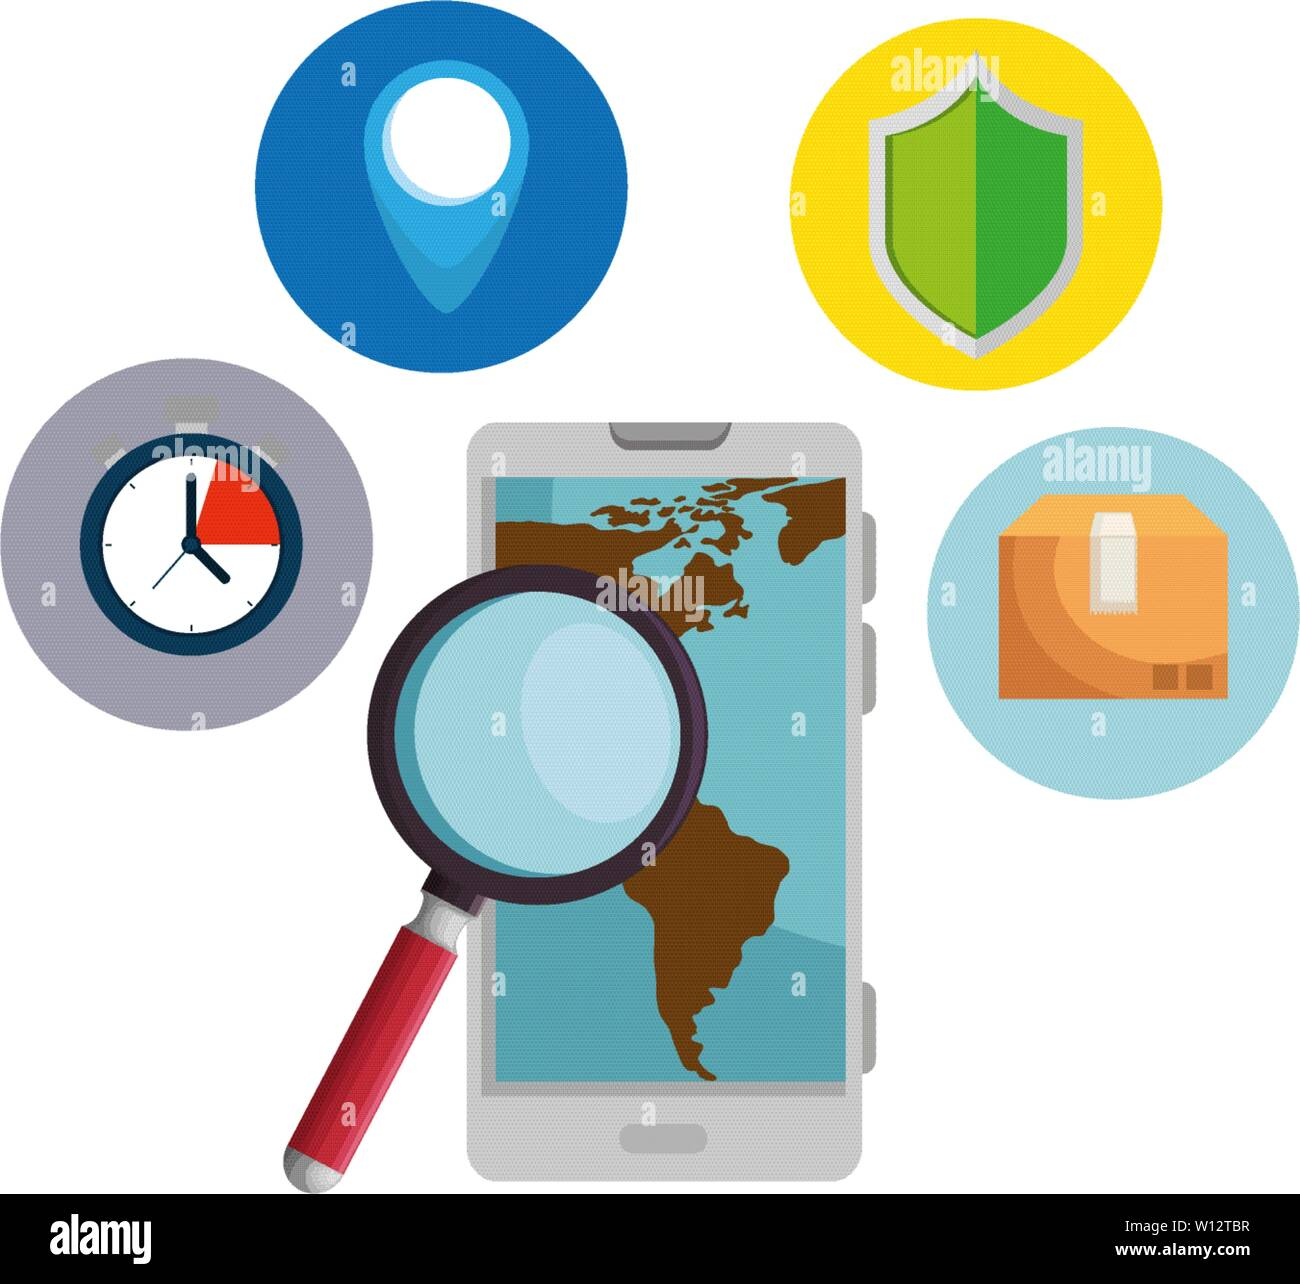 smartphone with magnifying glass and delivery service app - Stock Image